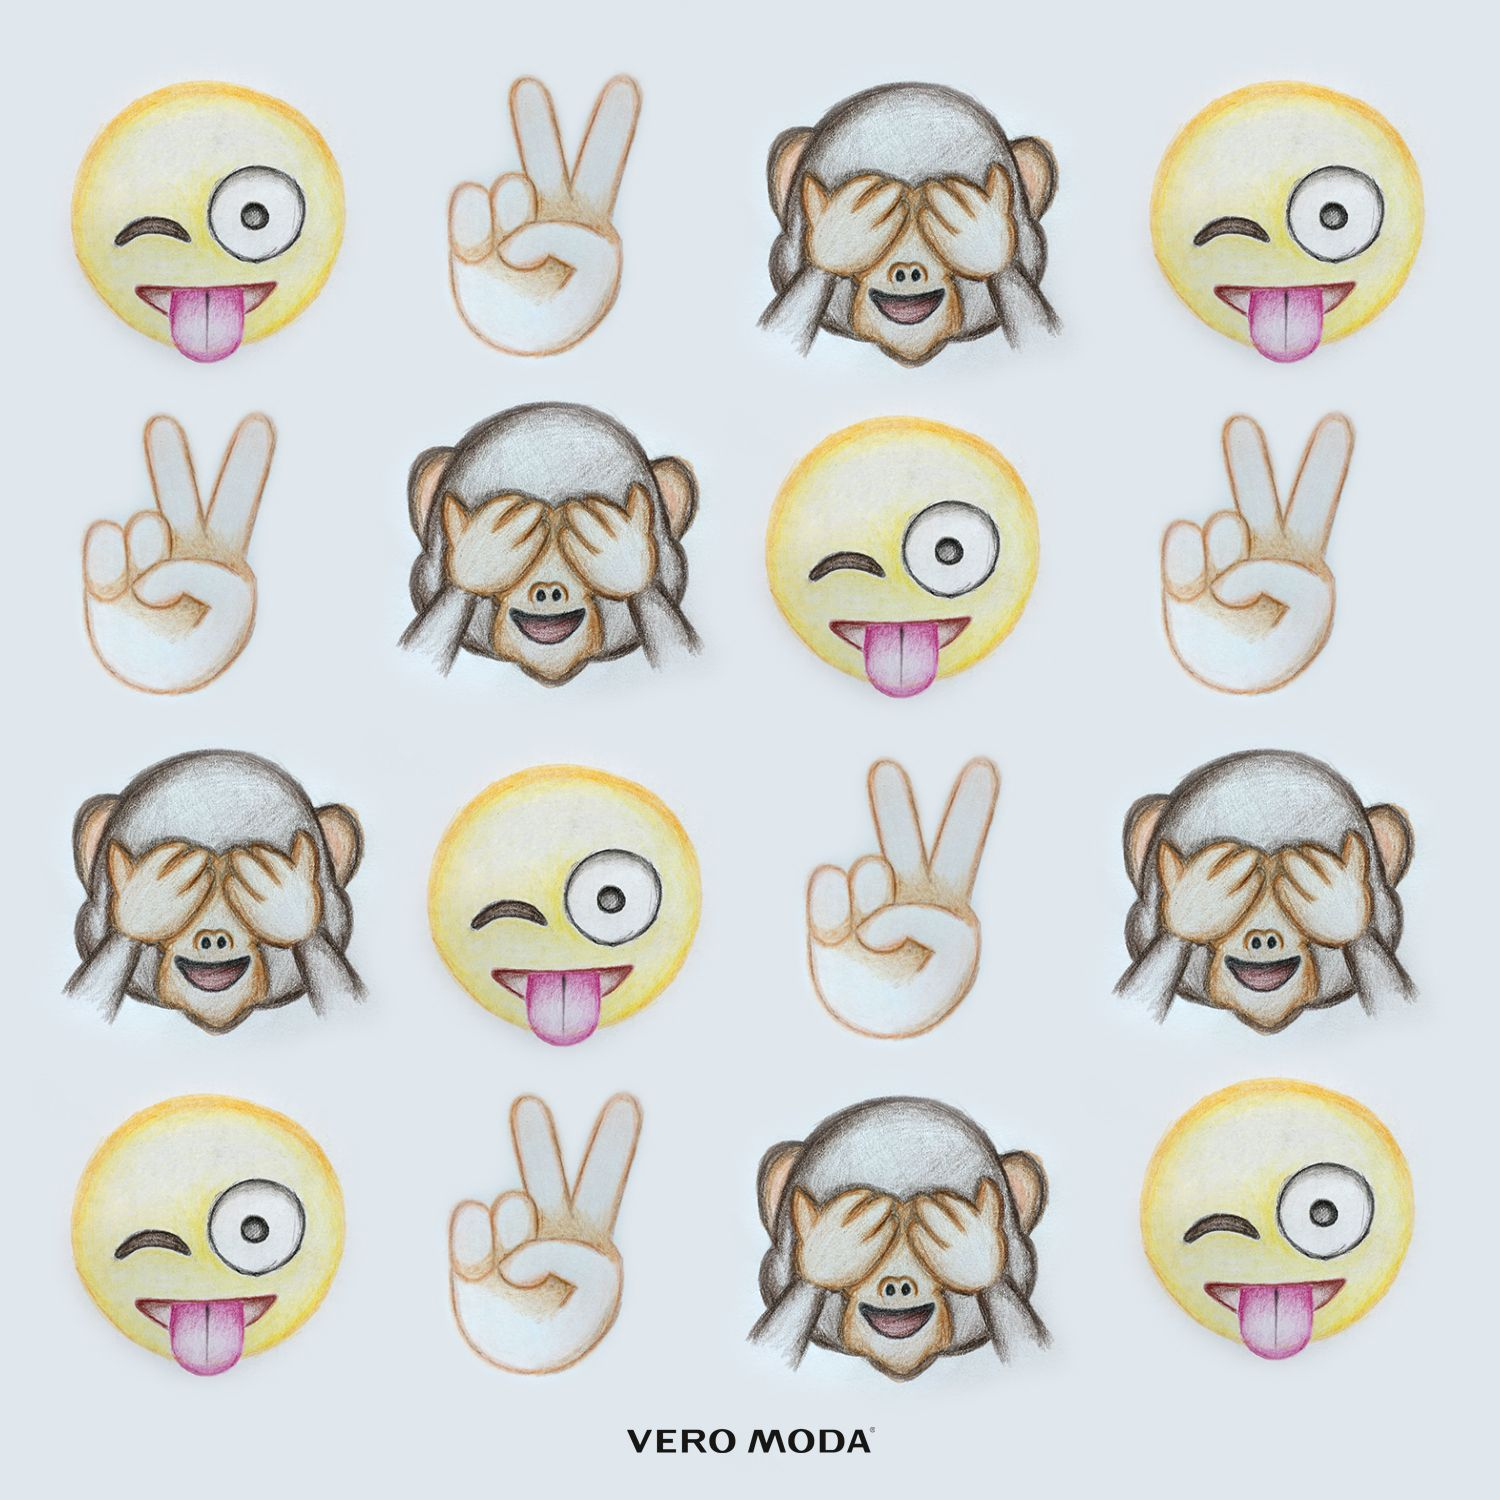 These Are Some Of Our Fave Emojis What Are Your Favorite Emojis